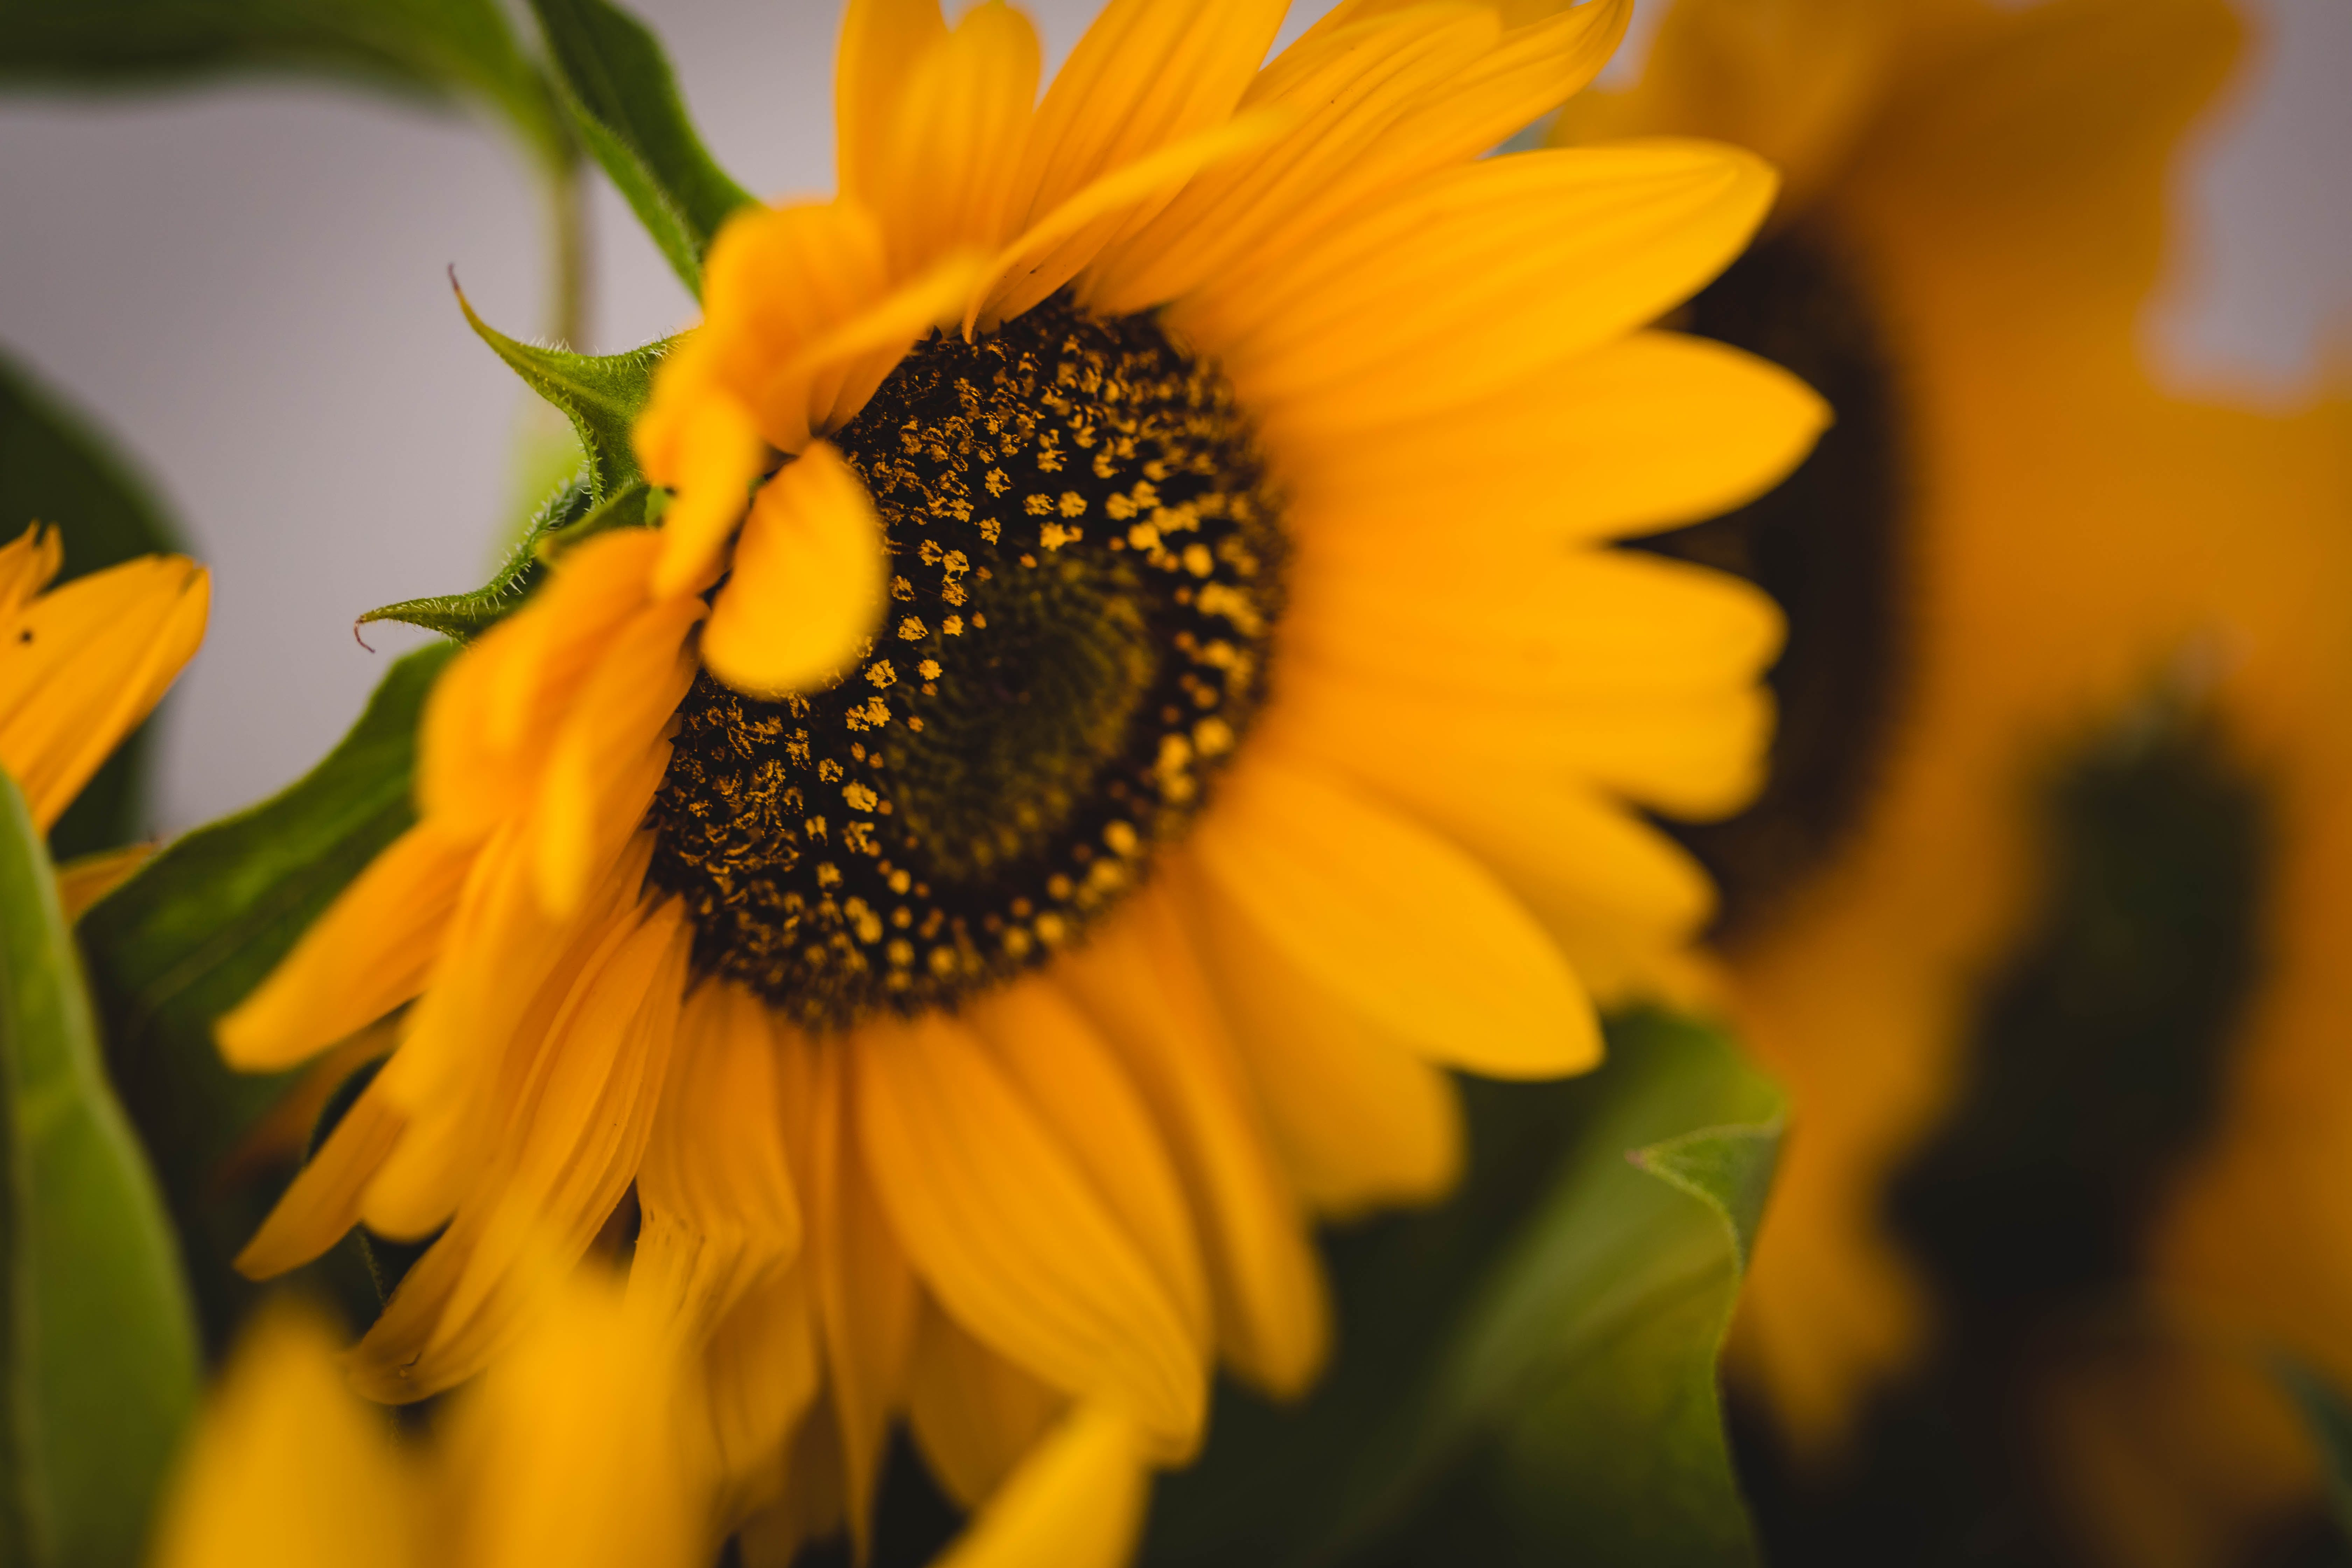 Shallow Focus of Sunflower